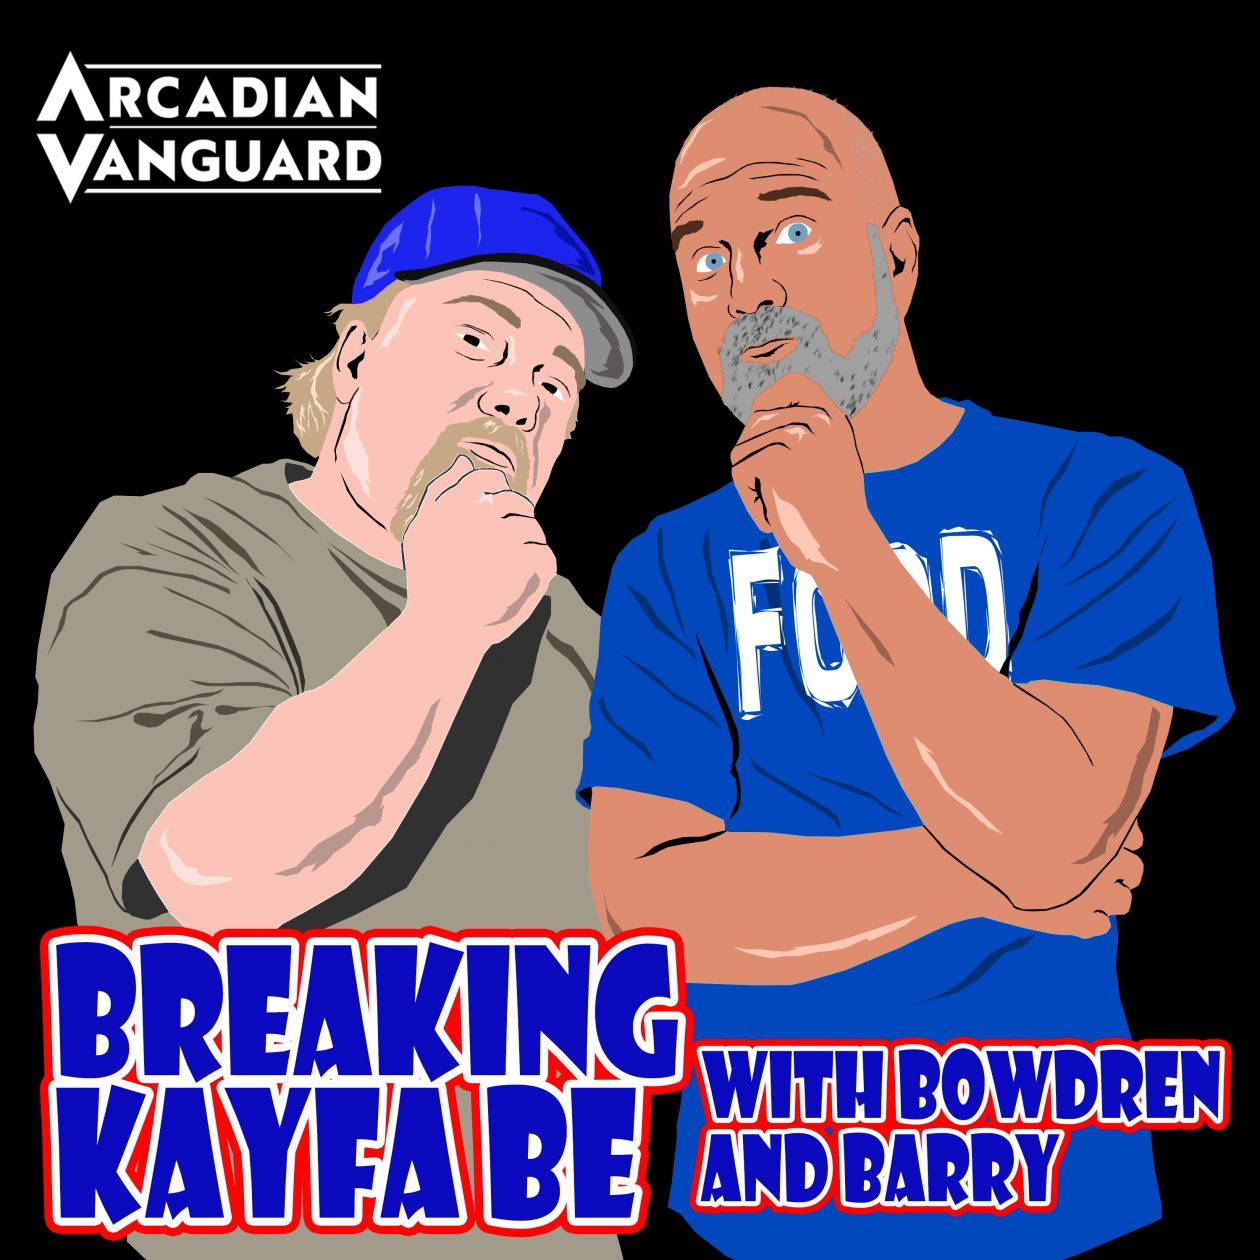 Breaking Kayfabe with Bowdren and Barry